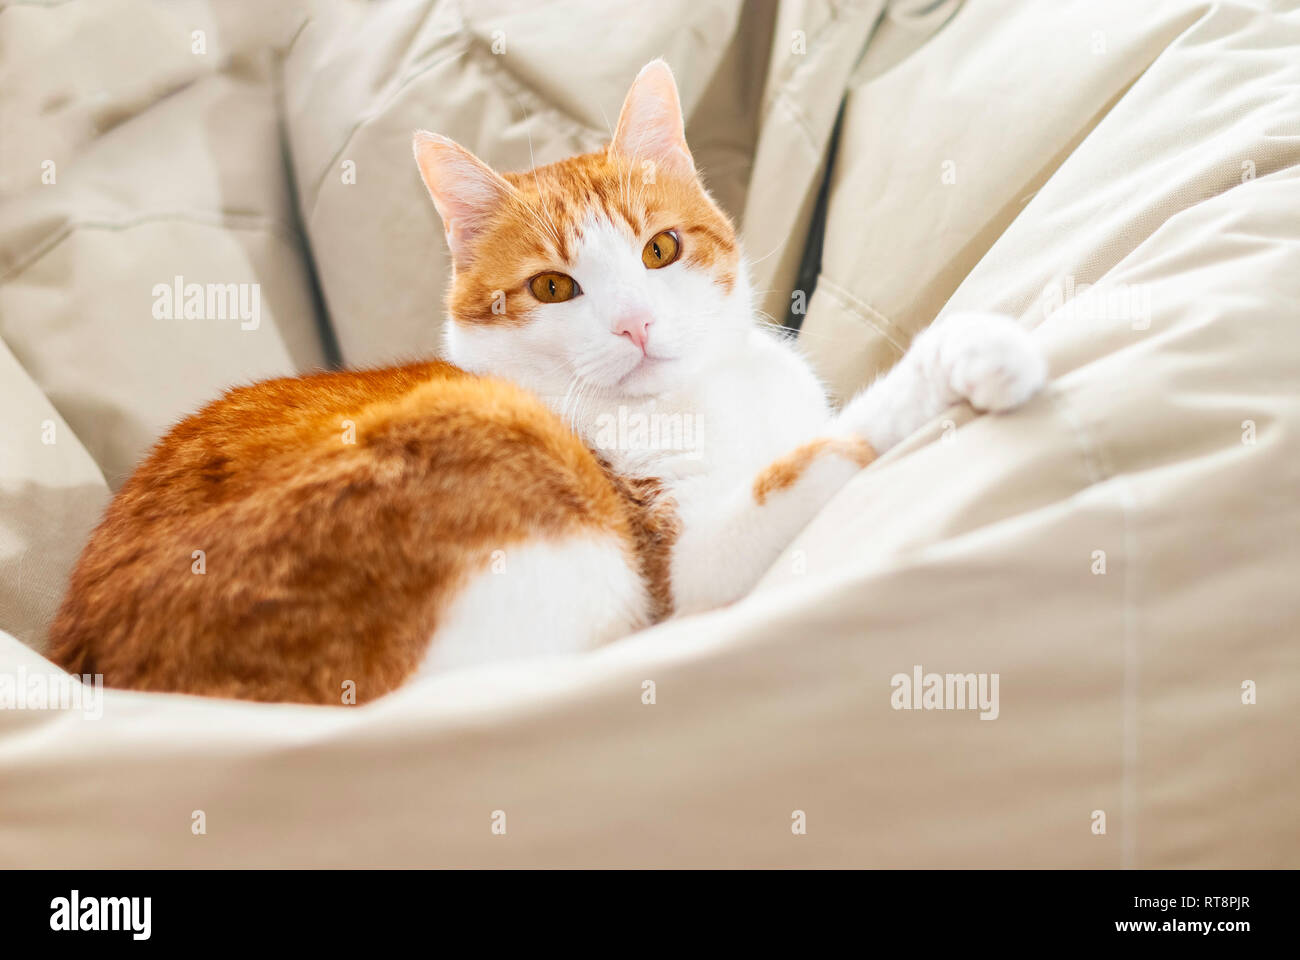 Yellow white domestic cat looking in camera lying on lazy bag- Shallow depth of field close up direct shot of domestic cat - Focus on eyes - Stock Image